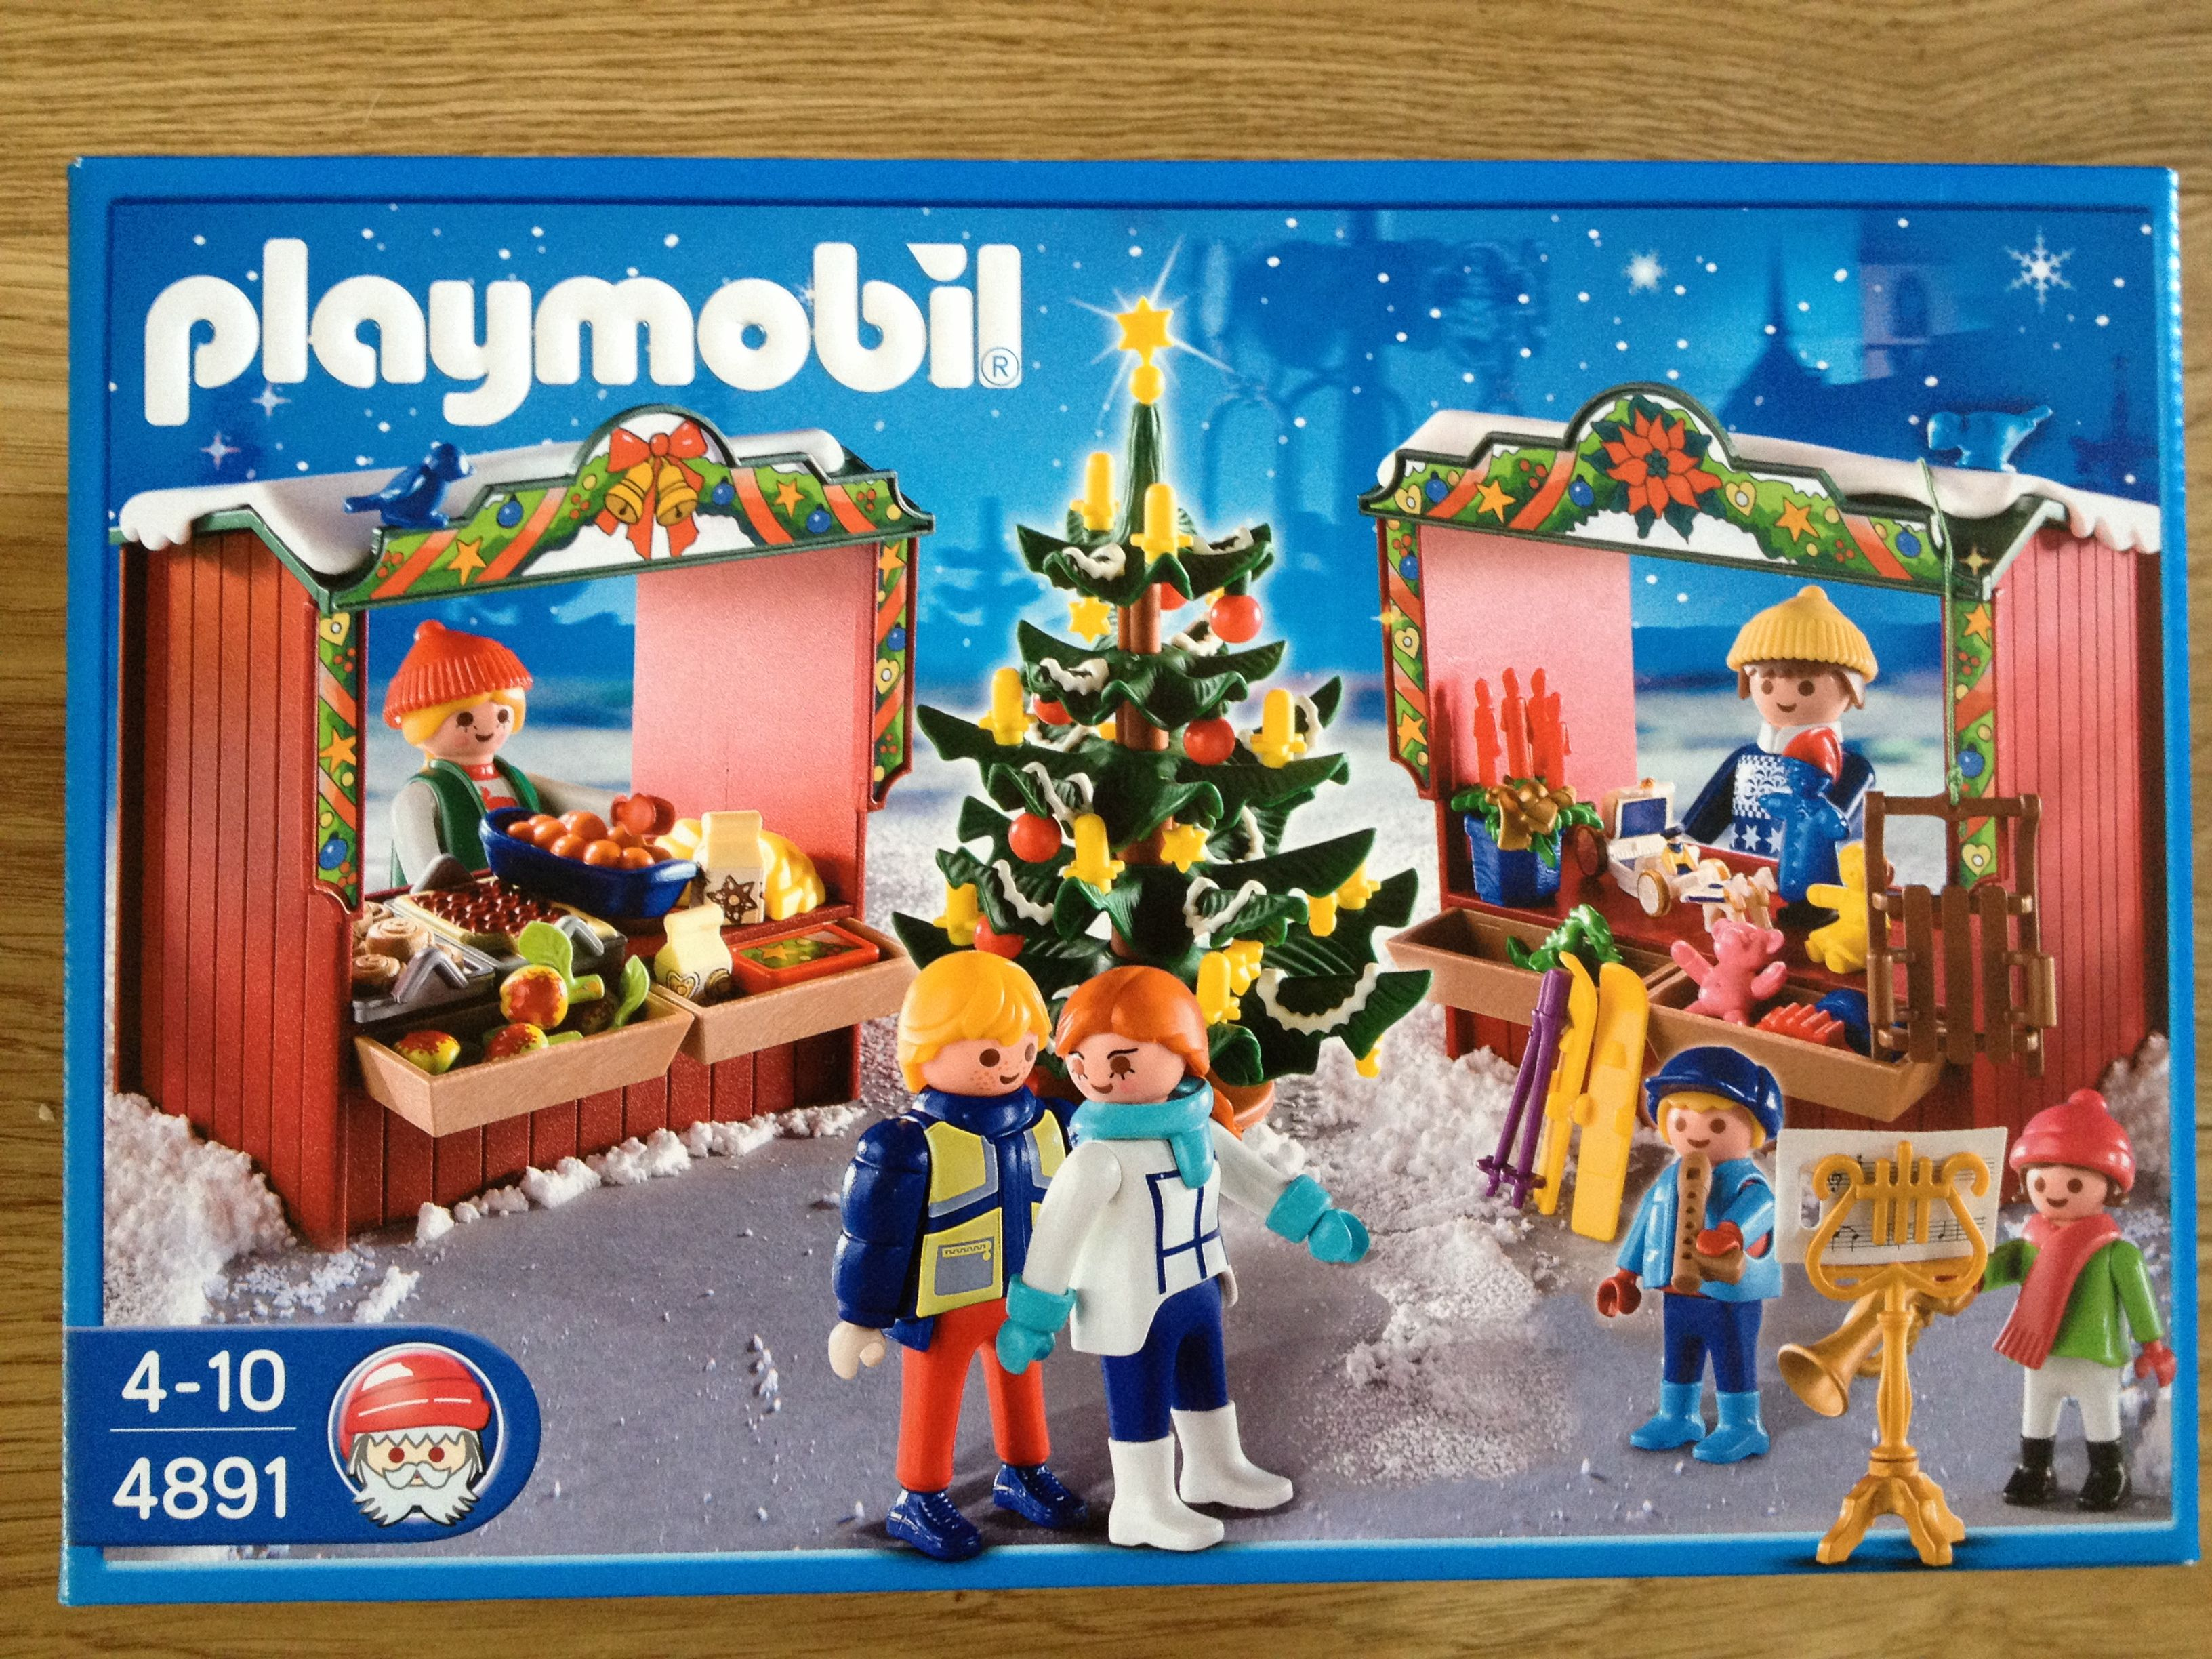 Playmobil 4891 Christmas Market. Bought for $6 at Barnes and Noble ...